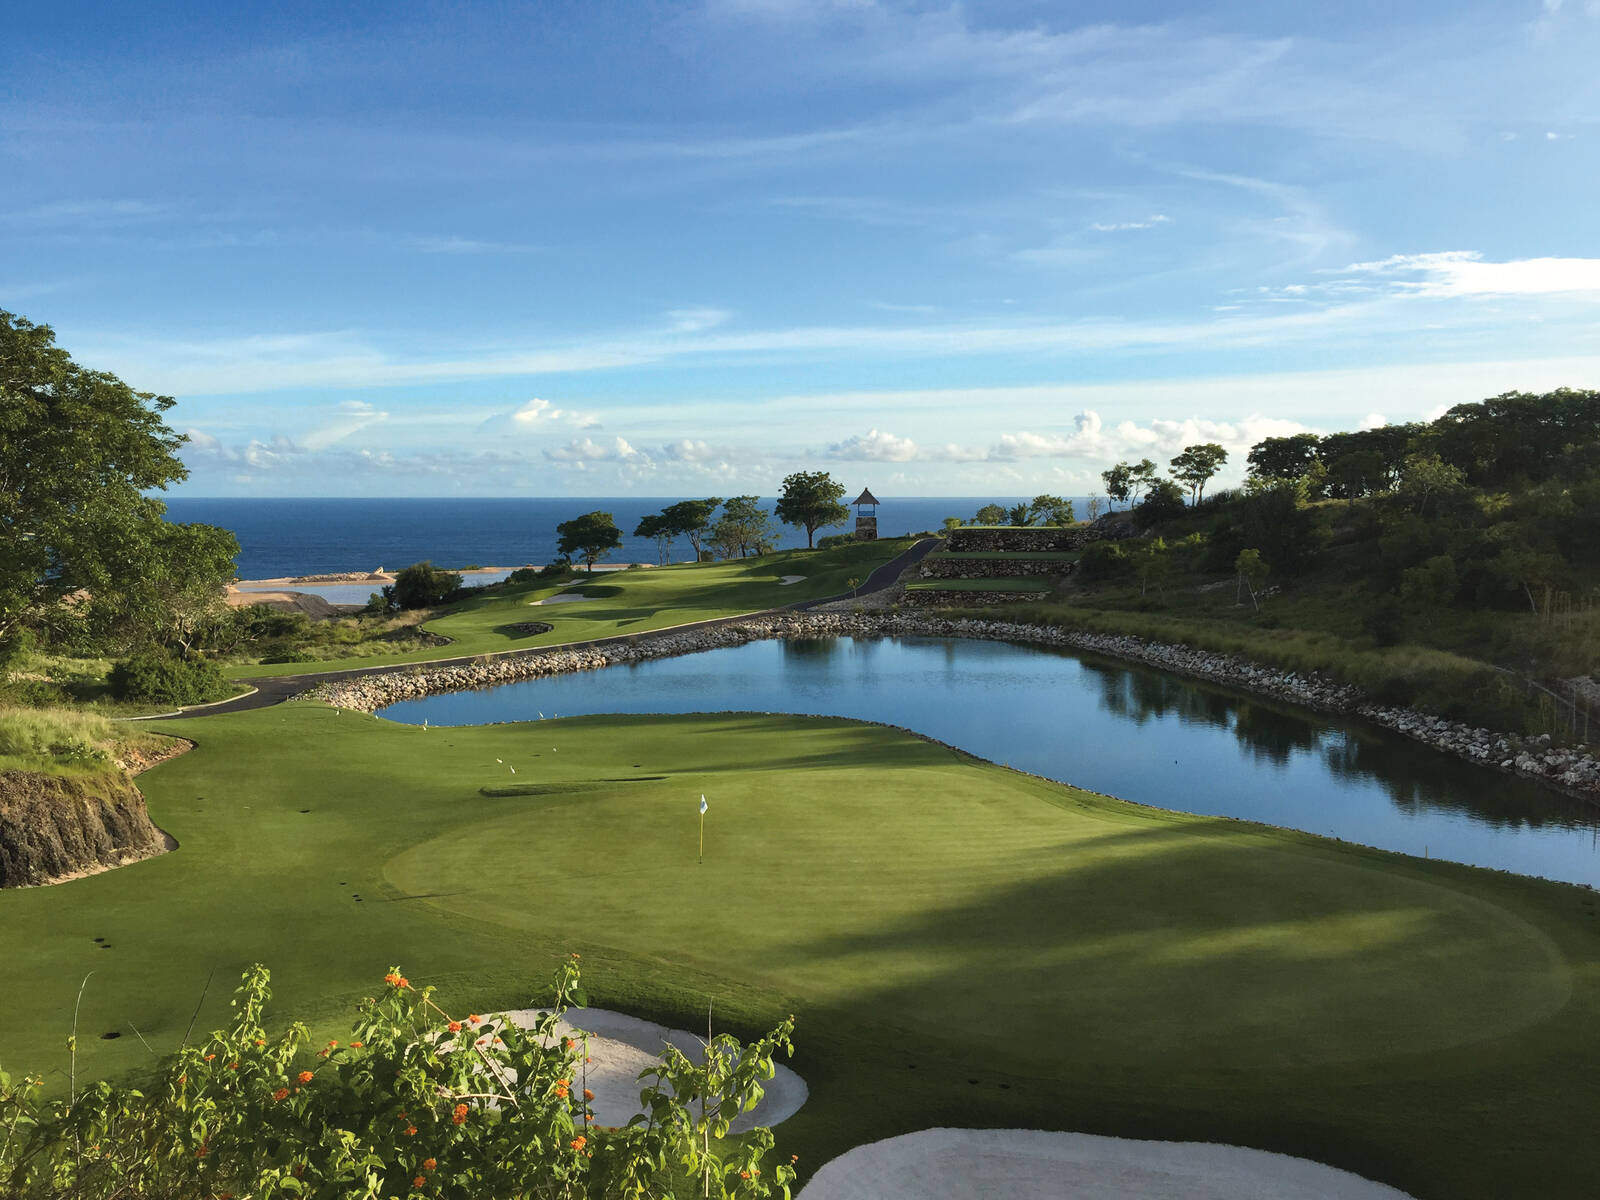 Golf Vacations in Bali